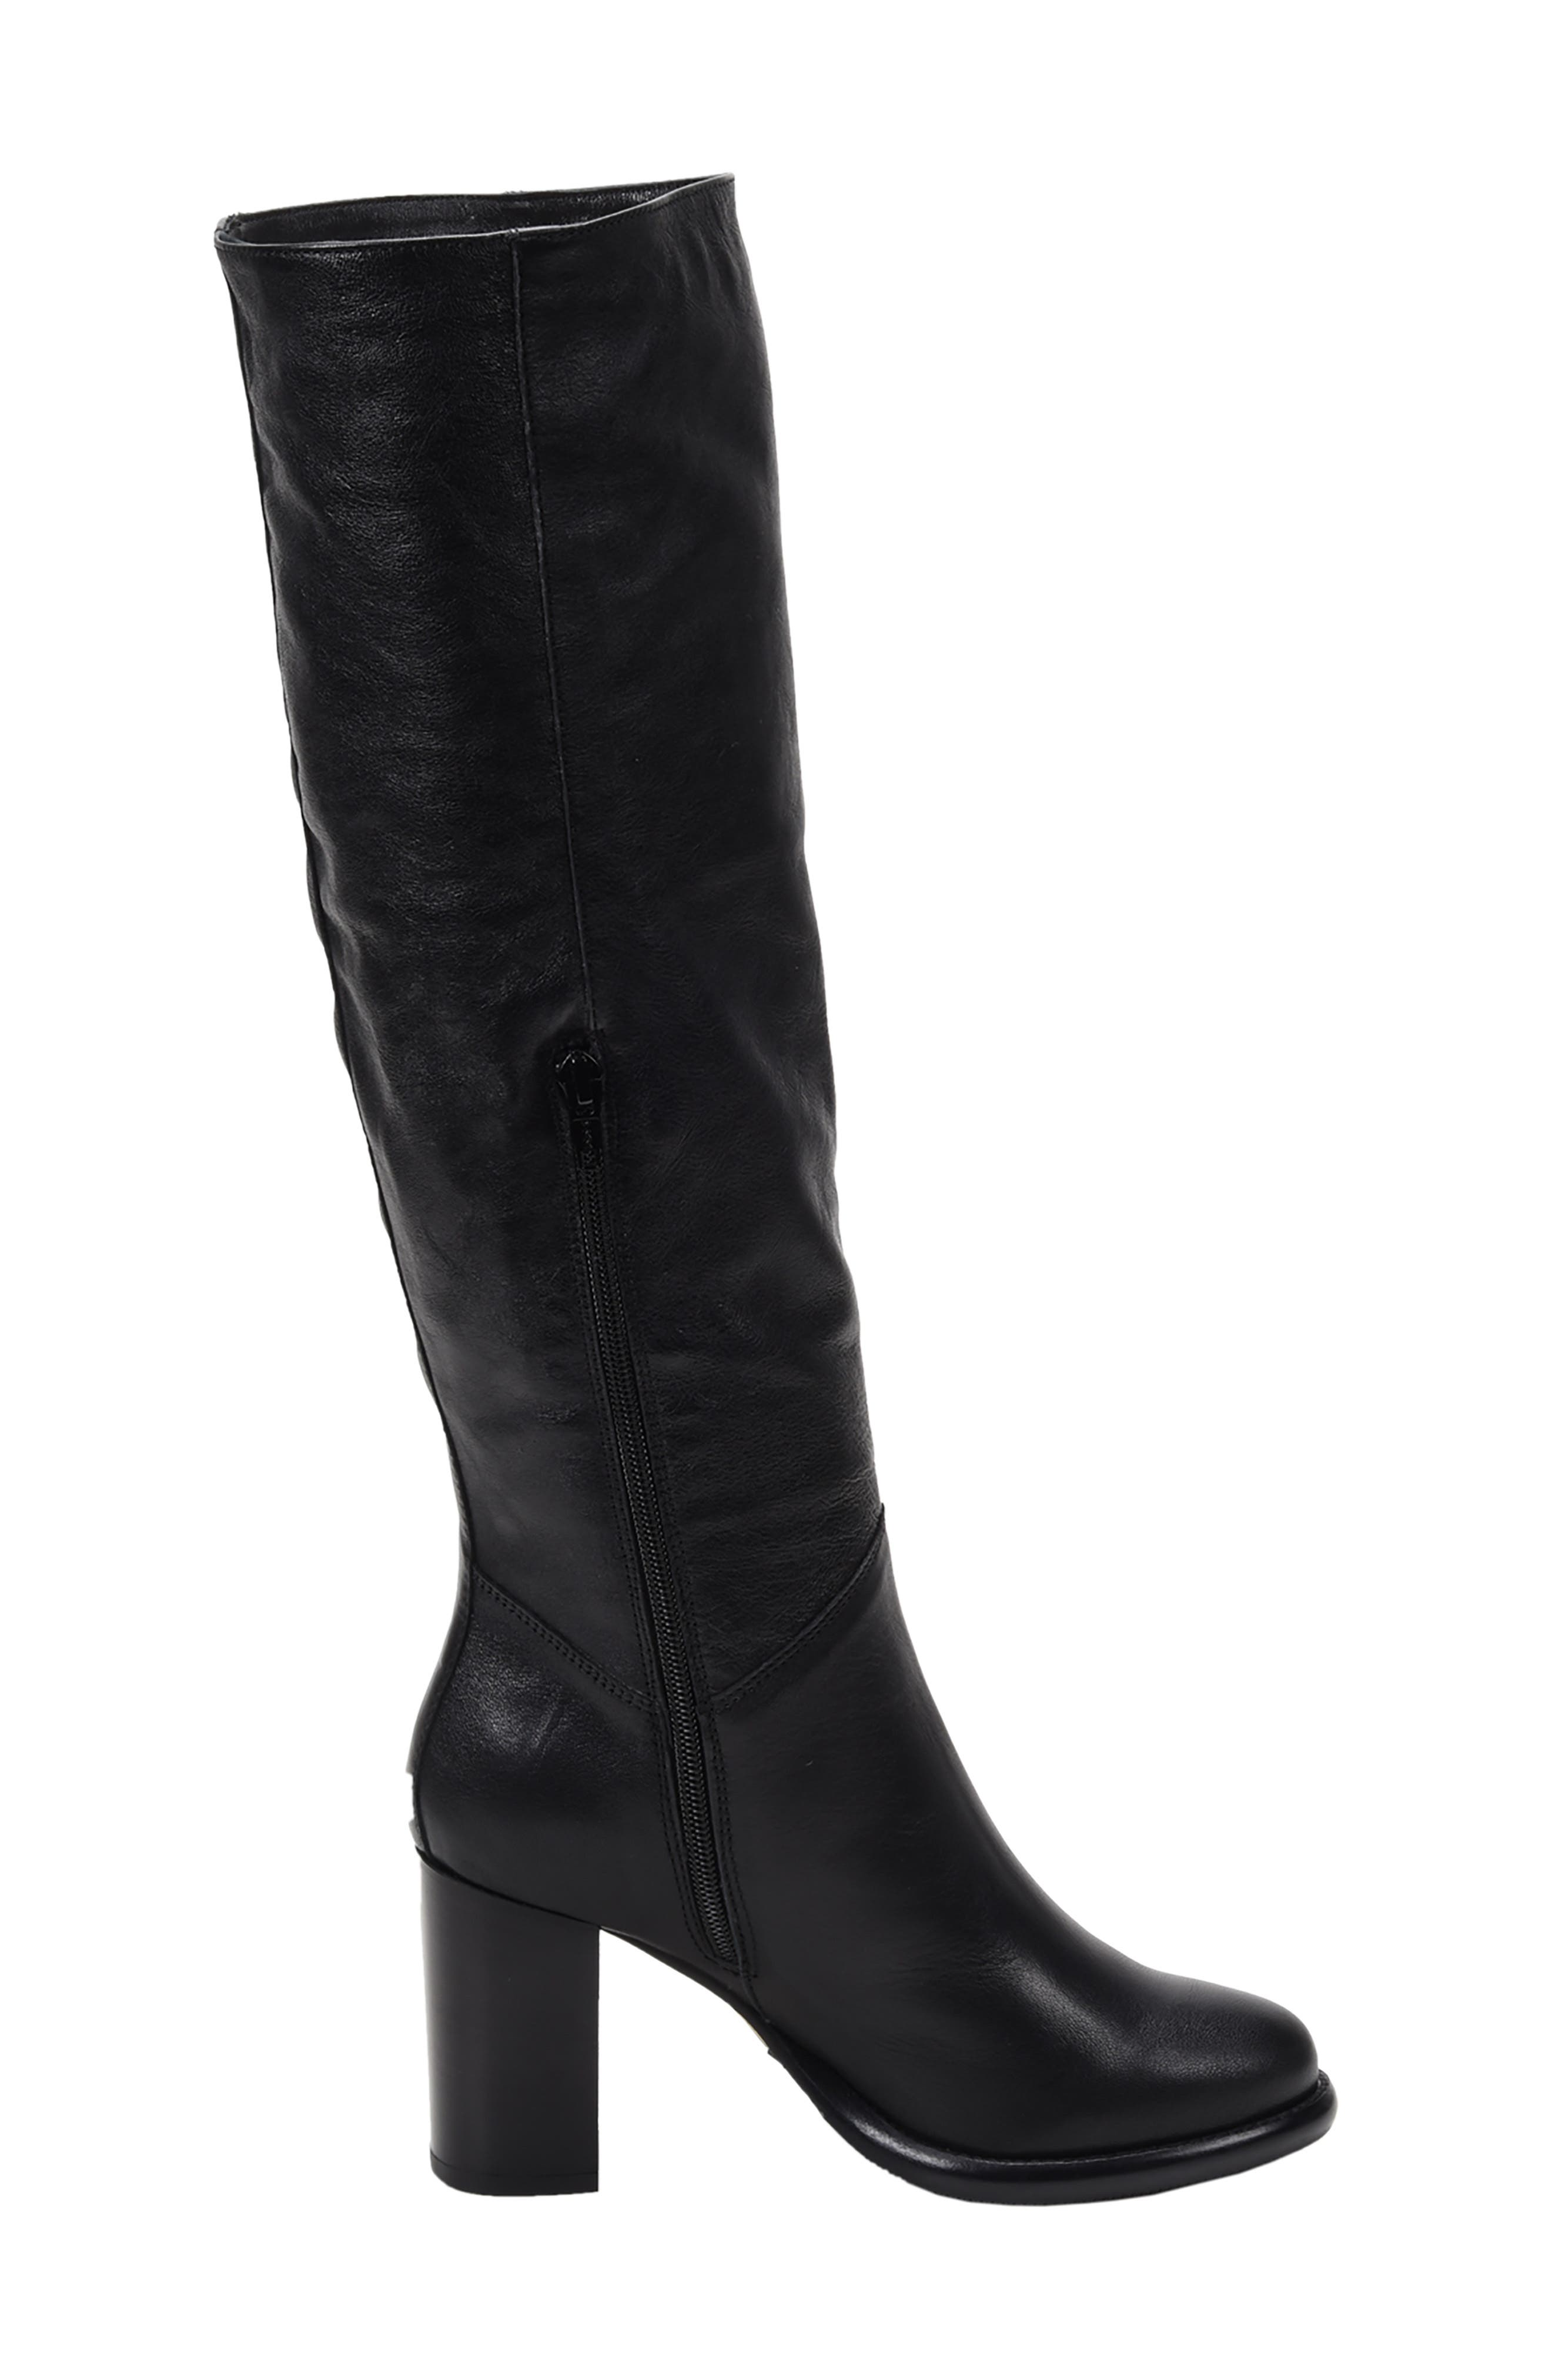 ROSS & SNOW, Michela SP Waterproof Genuine Shearling Lined Boot, Alternate thumbnail 8, color, BLACK METALLIC LEATHER